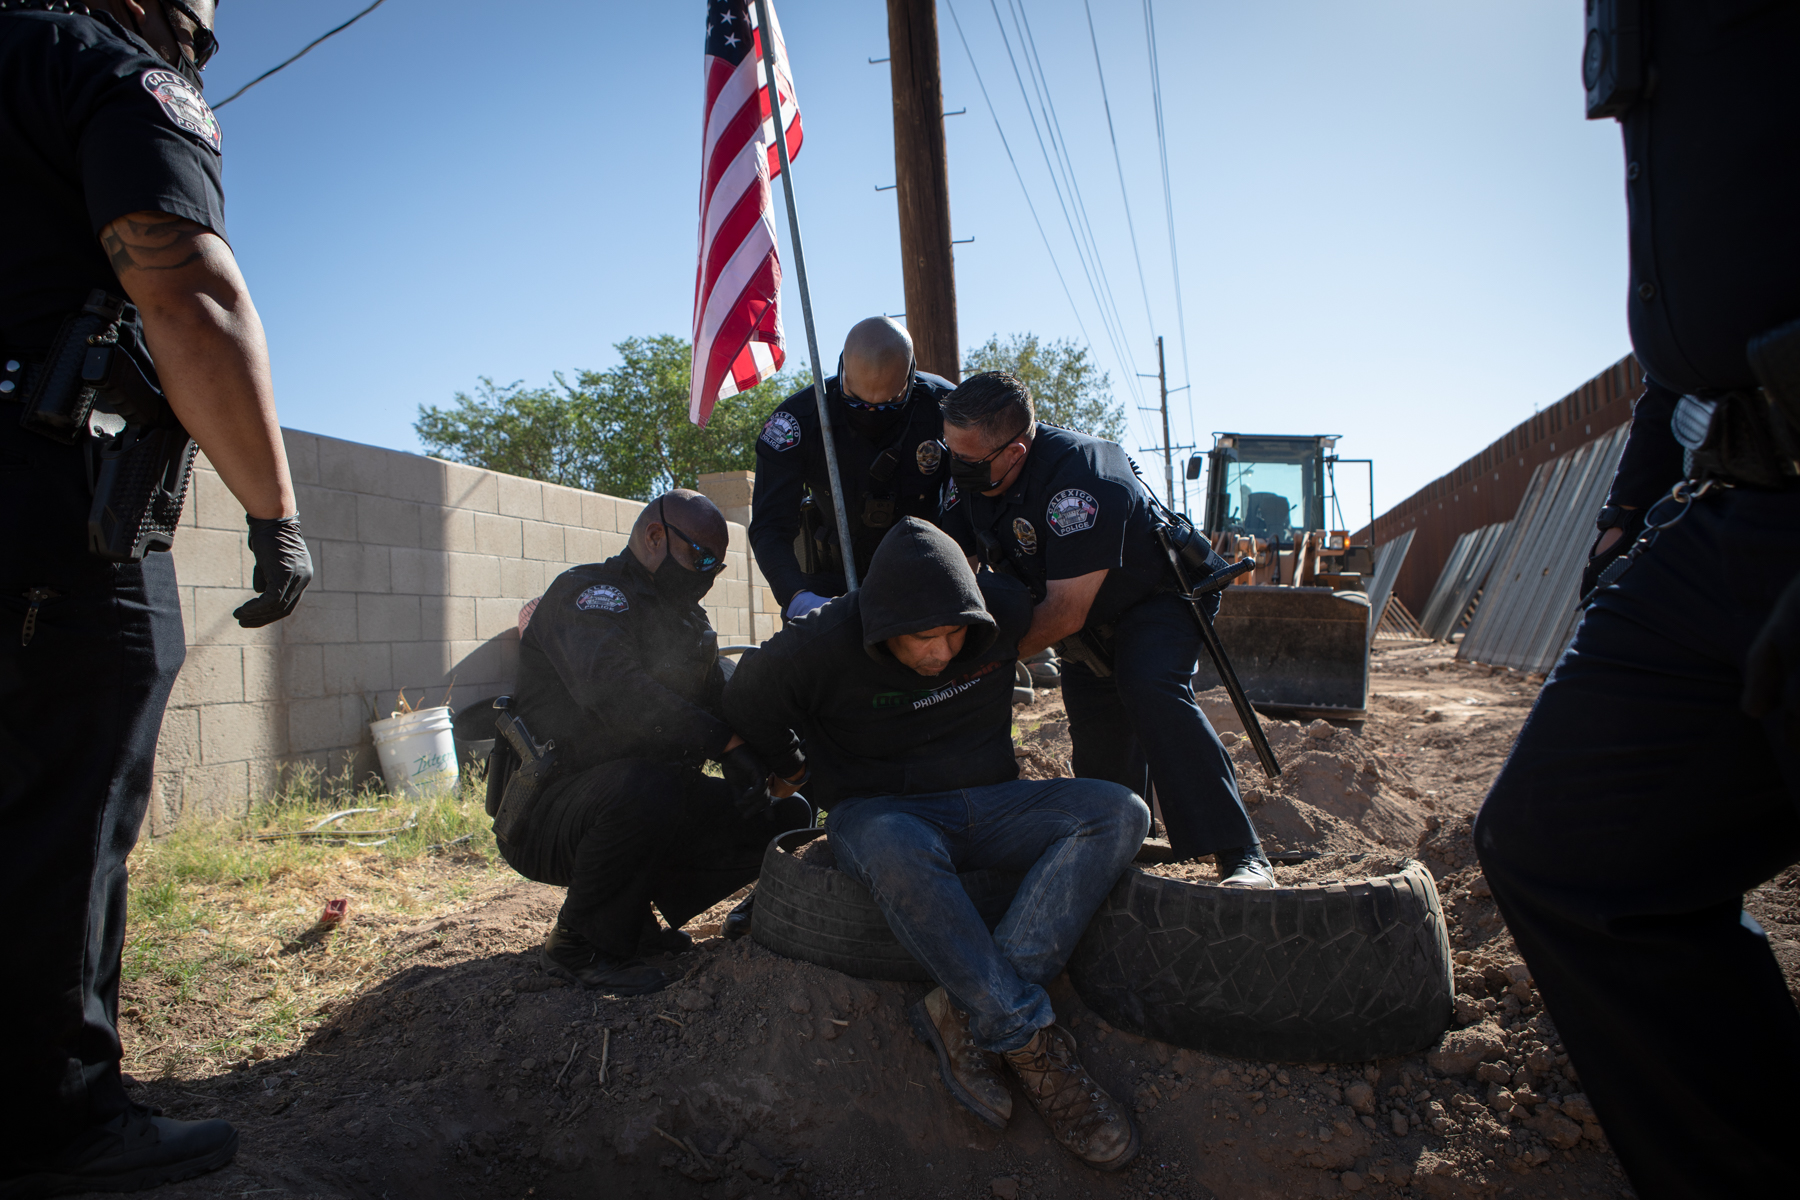 Calexico Police Clear Out Controversial Farmworker Encampment - Times of San Diego